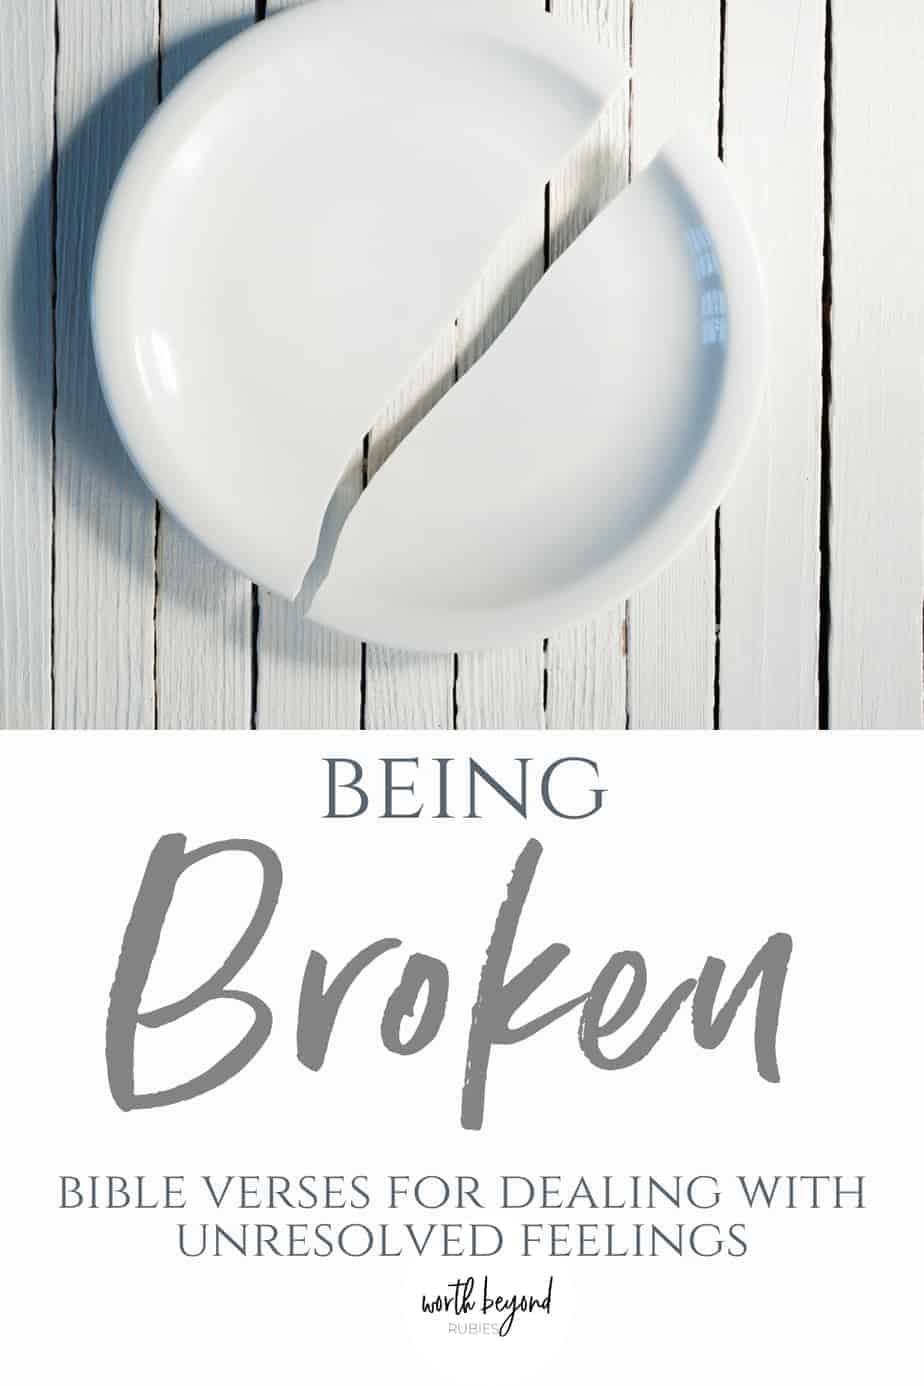 White broken plate on wood and text that says Being Broken - bible verses for dealing with unresolved feelings